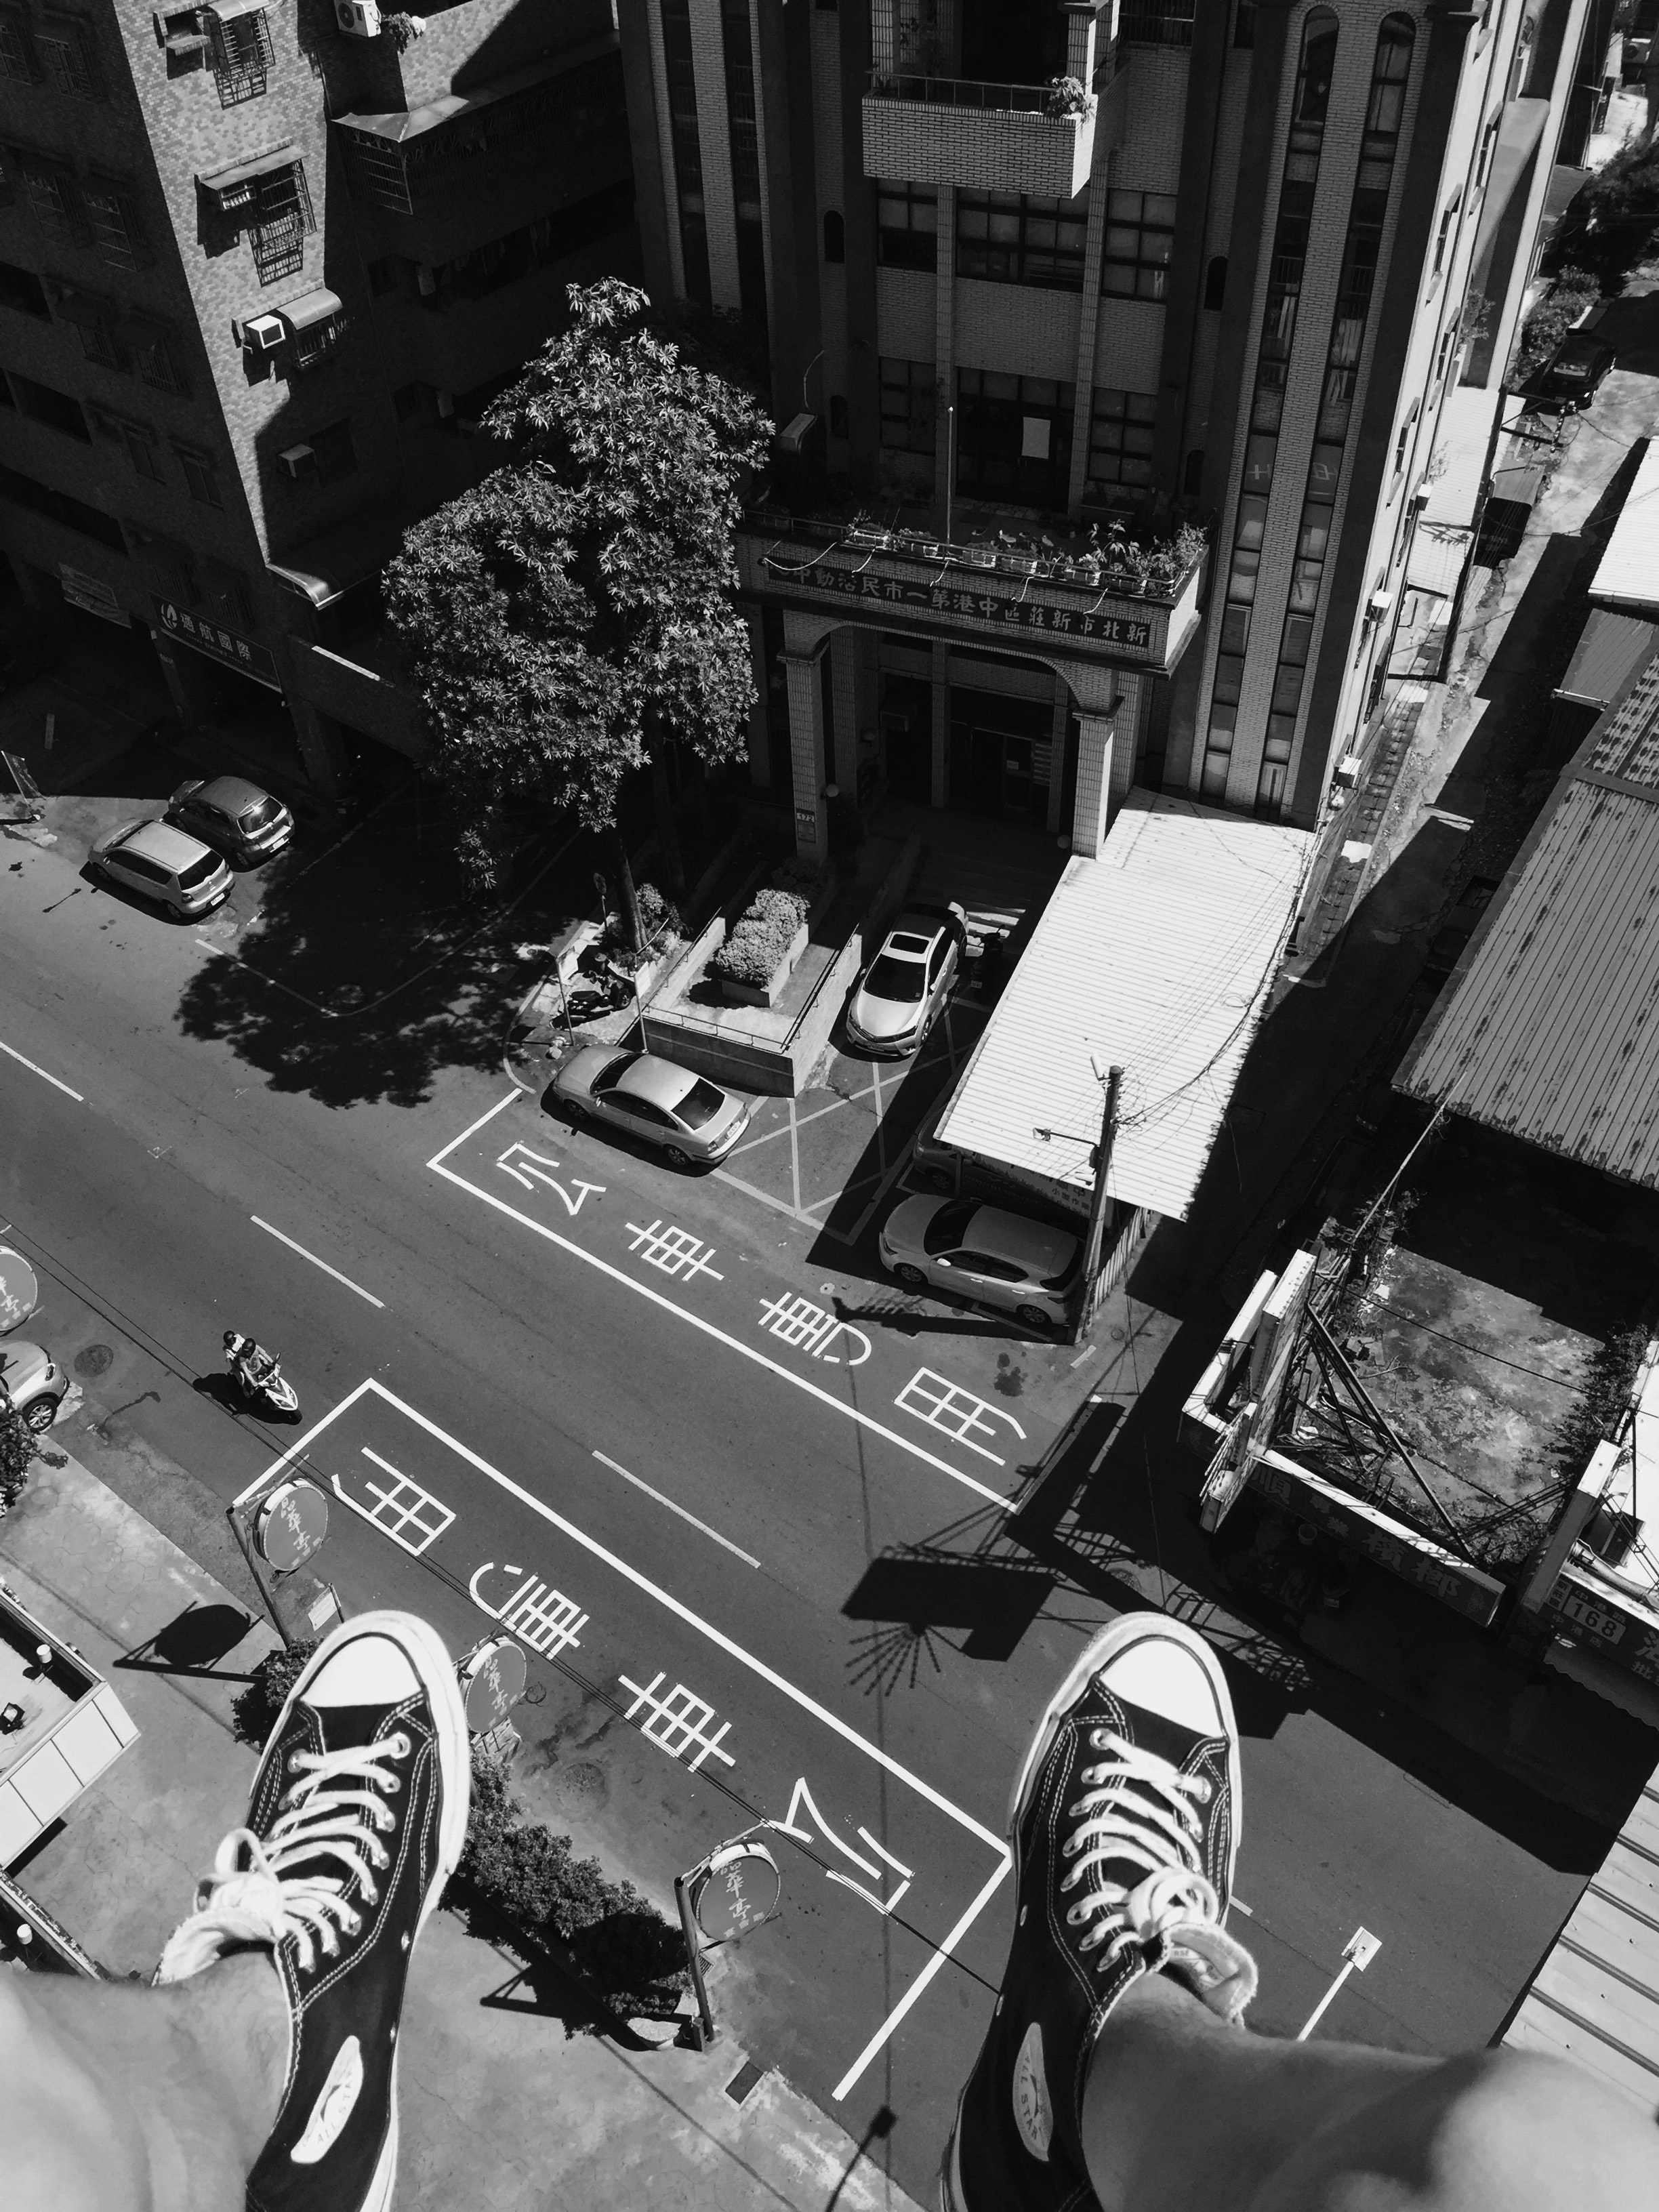 Grayscale Photography Man Wearing All Star Converse High Tops Below in Street and Building, Black-and-white, Building, Cars, Feet, HQ Photo